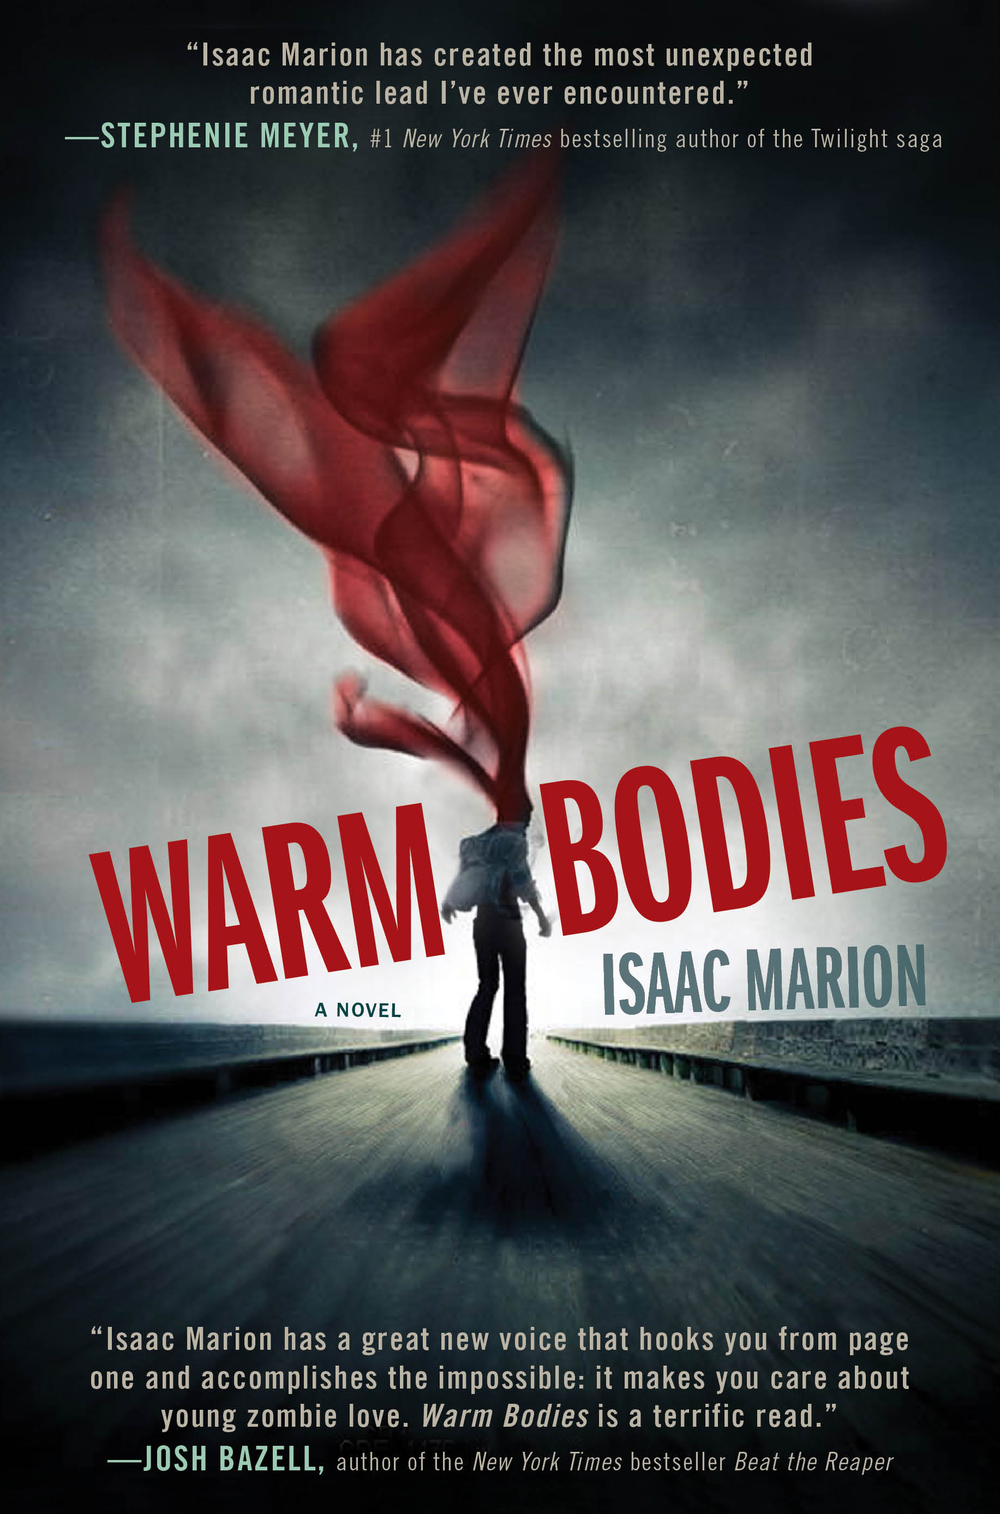 marion_warmbodies.jpg